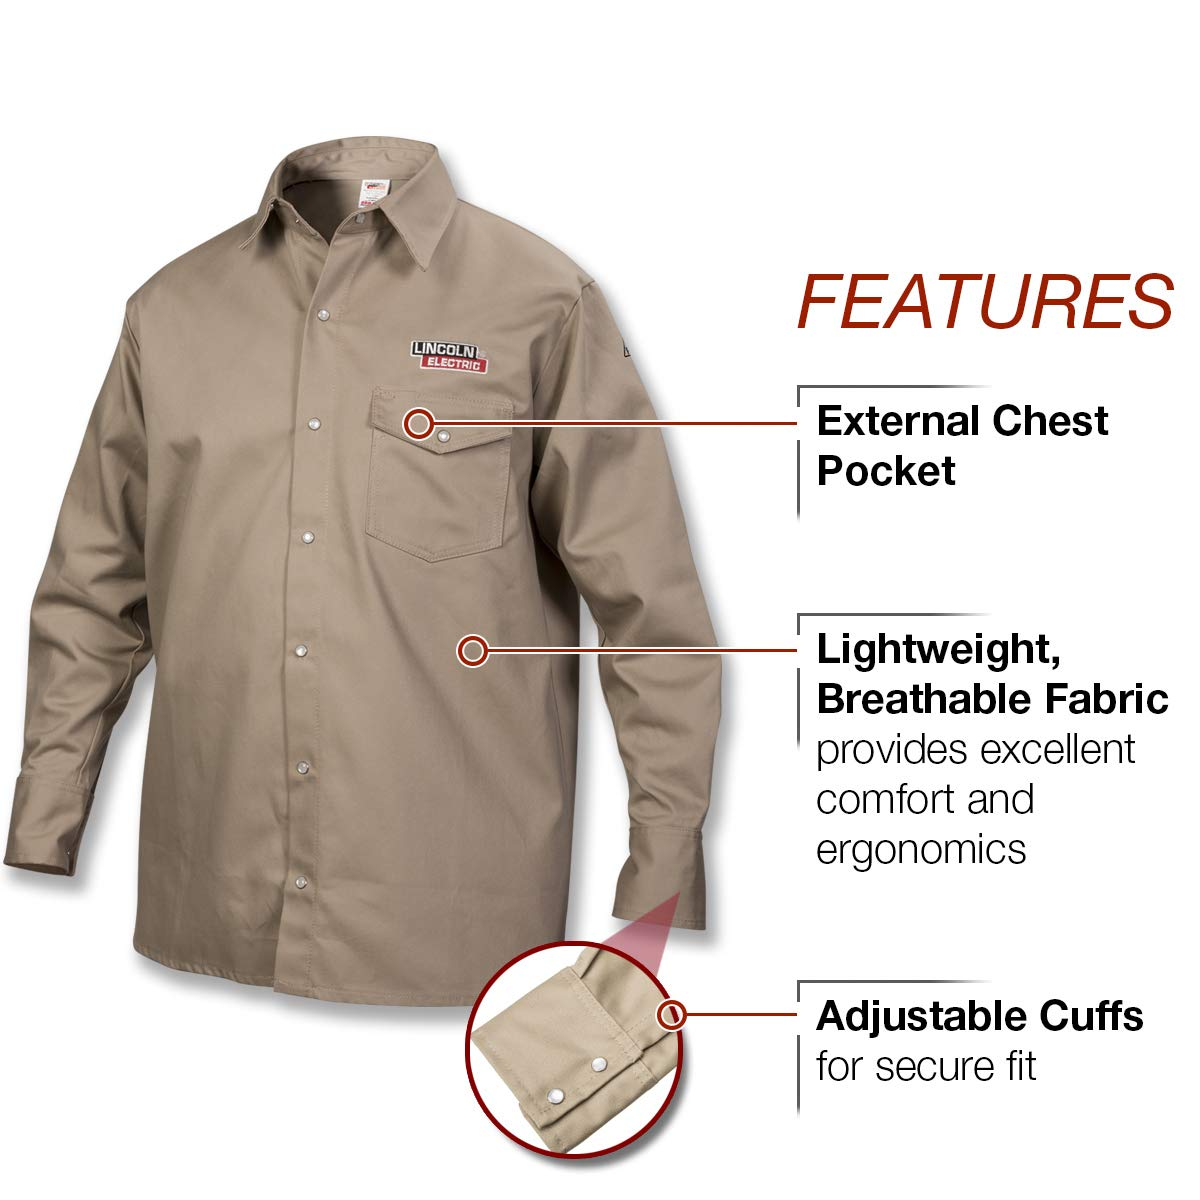 Lincoln Electric Welding Shirt | Premium Flame Resistant (FR) Cotton | Custom Fit | Khaki / Tan | 2XL | K3382-2XL by Lincoln Electric (Image #3)